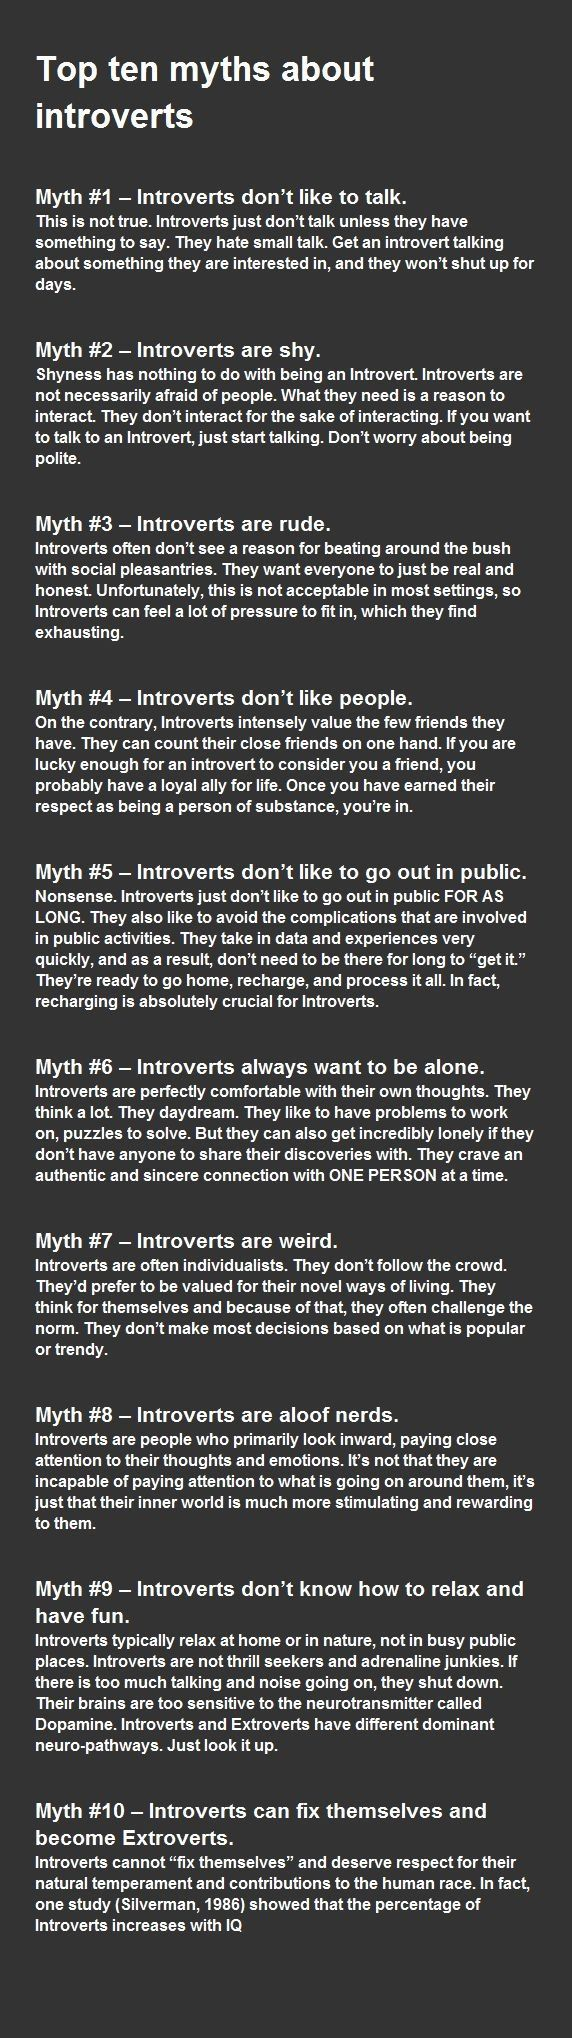 Introvert myths - #9 is certainly me! I Defo shut down where there's too much talking/noise. I need to be able to think and process